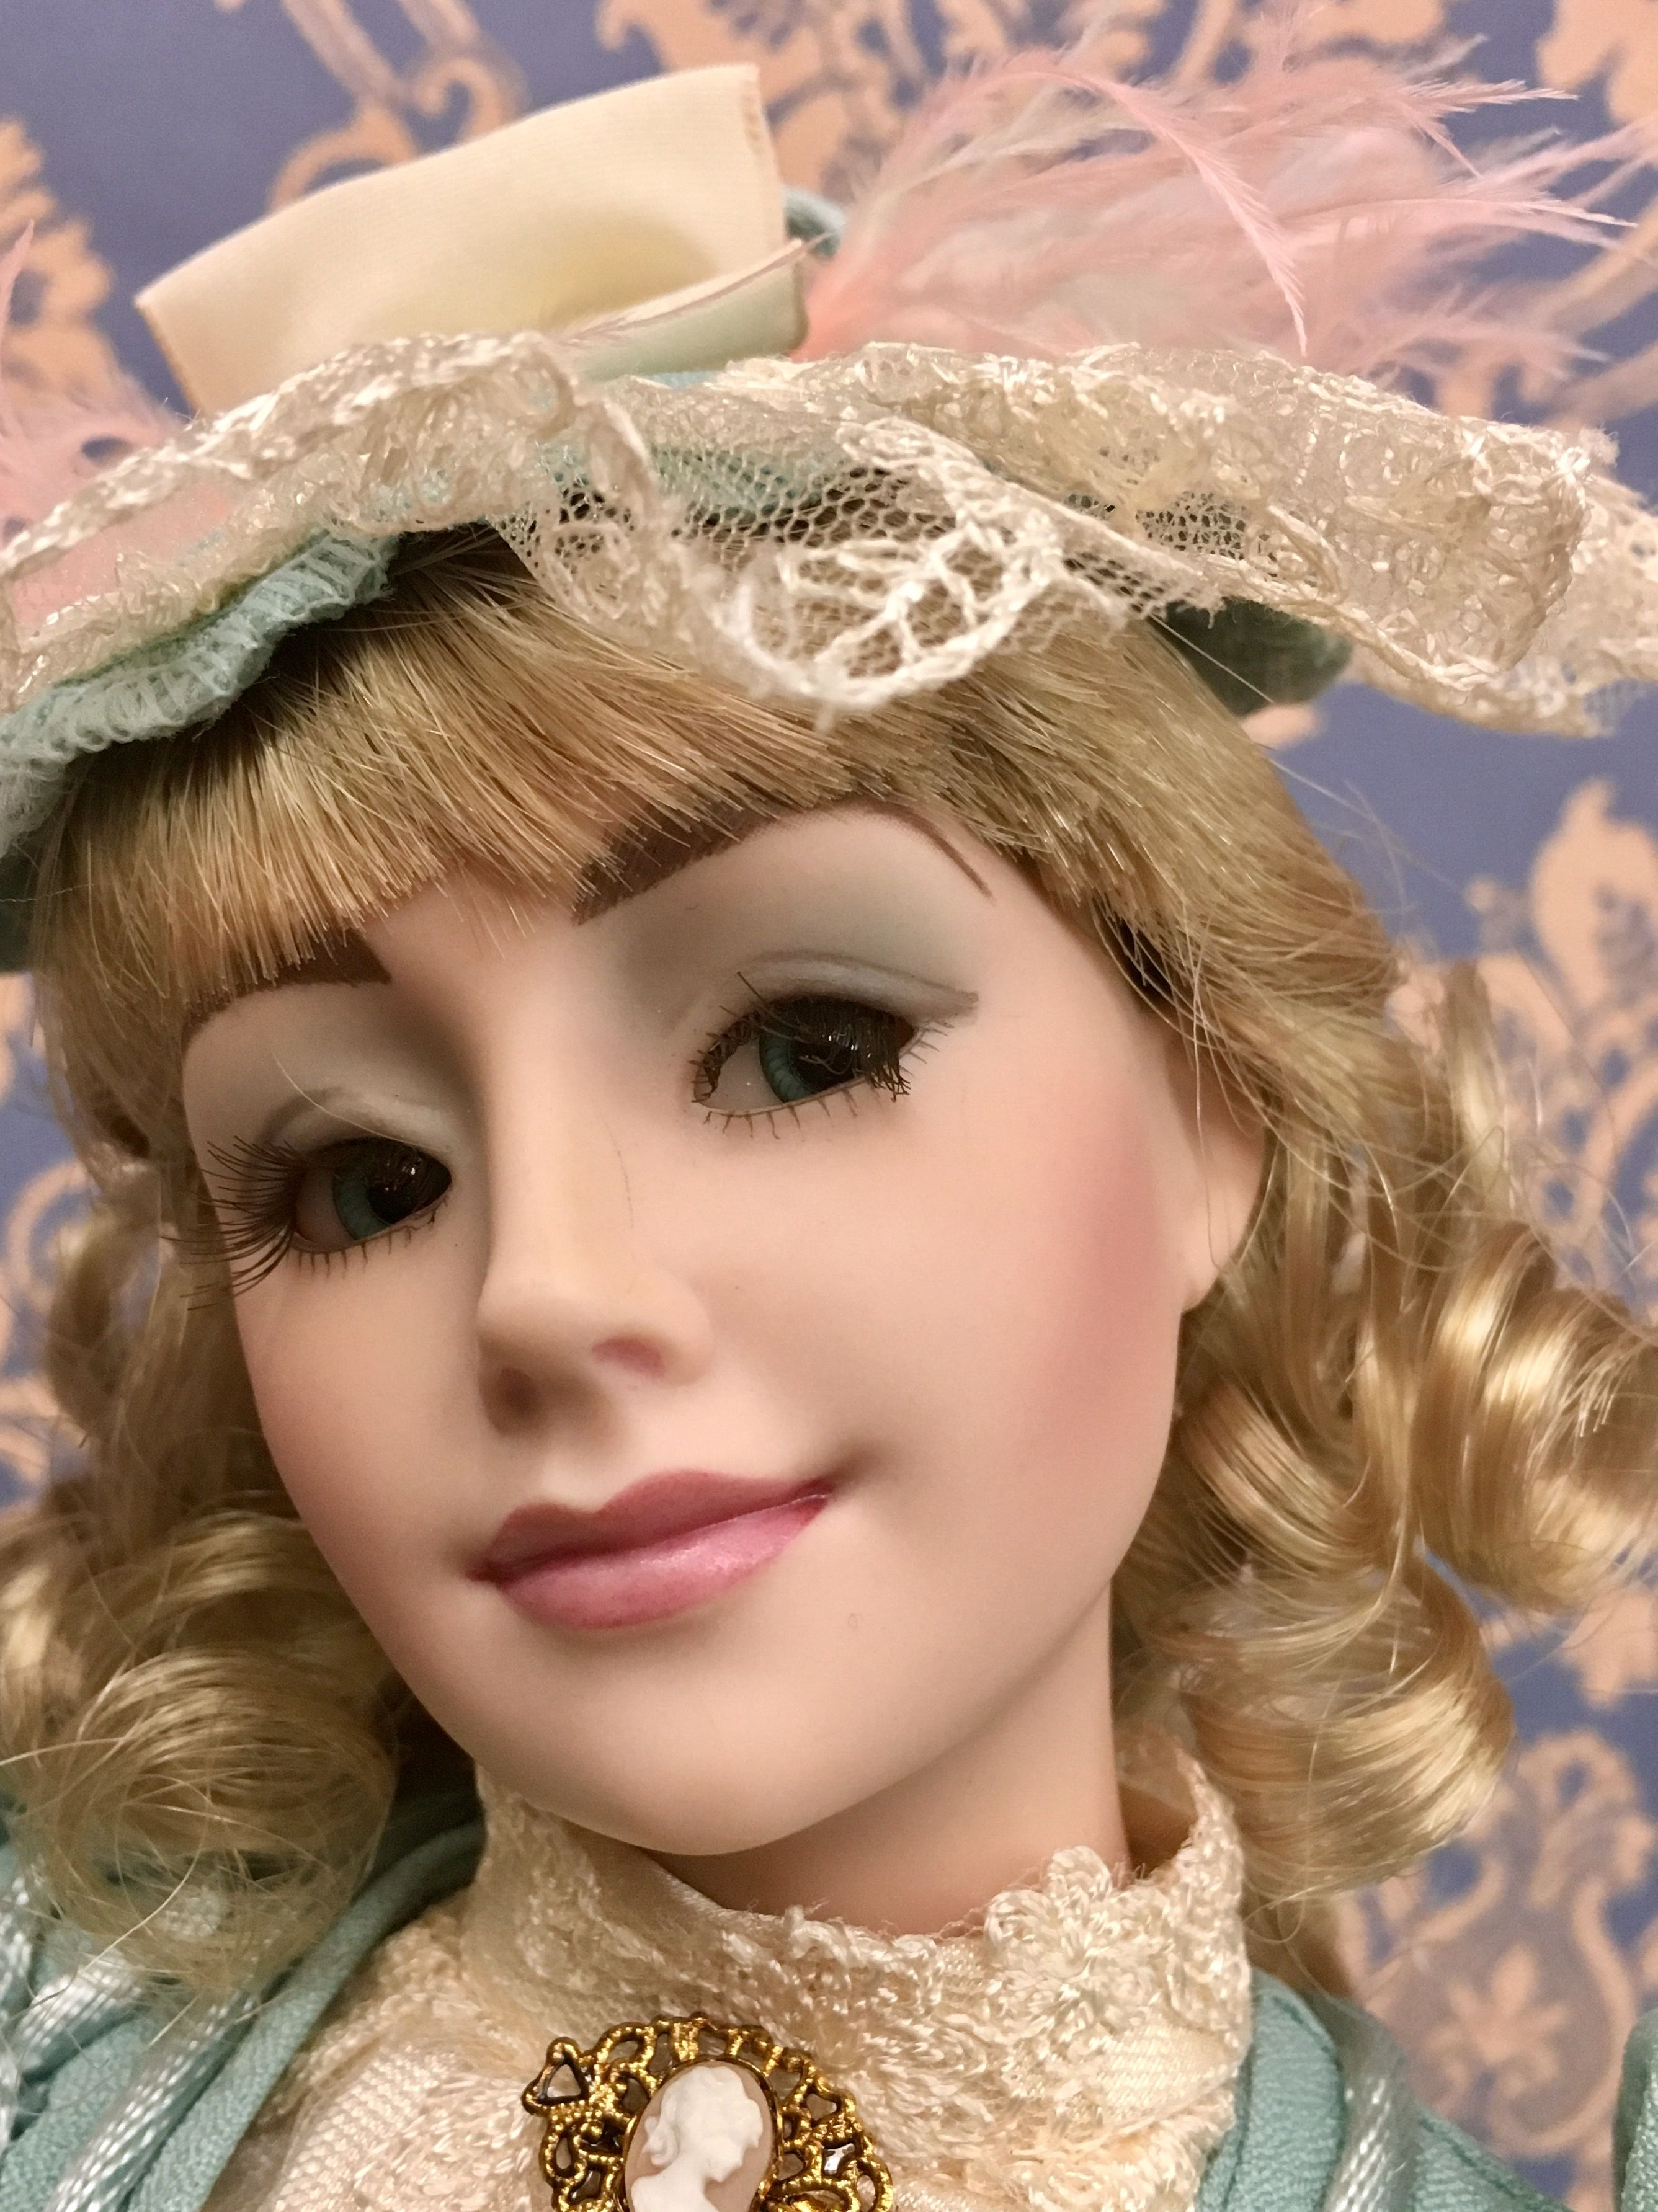 Movie girl finds porcelain doll, fairy wings for adults